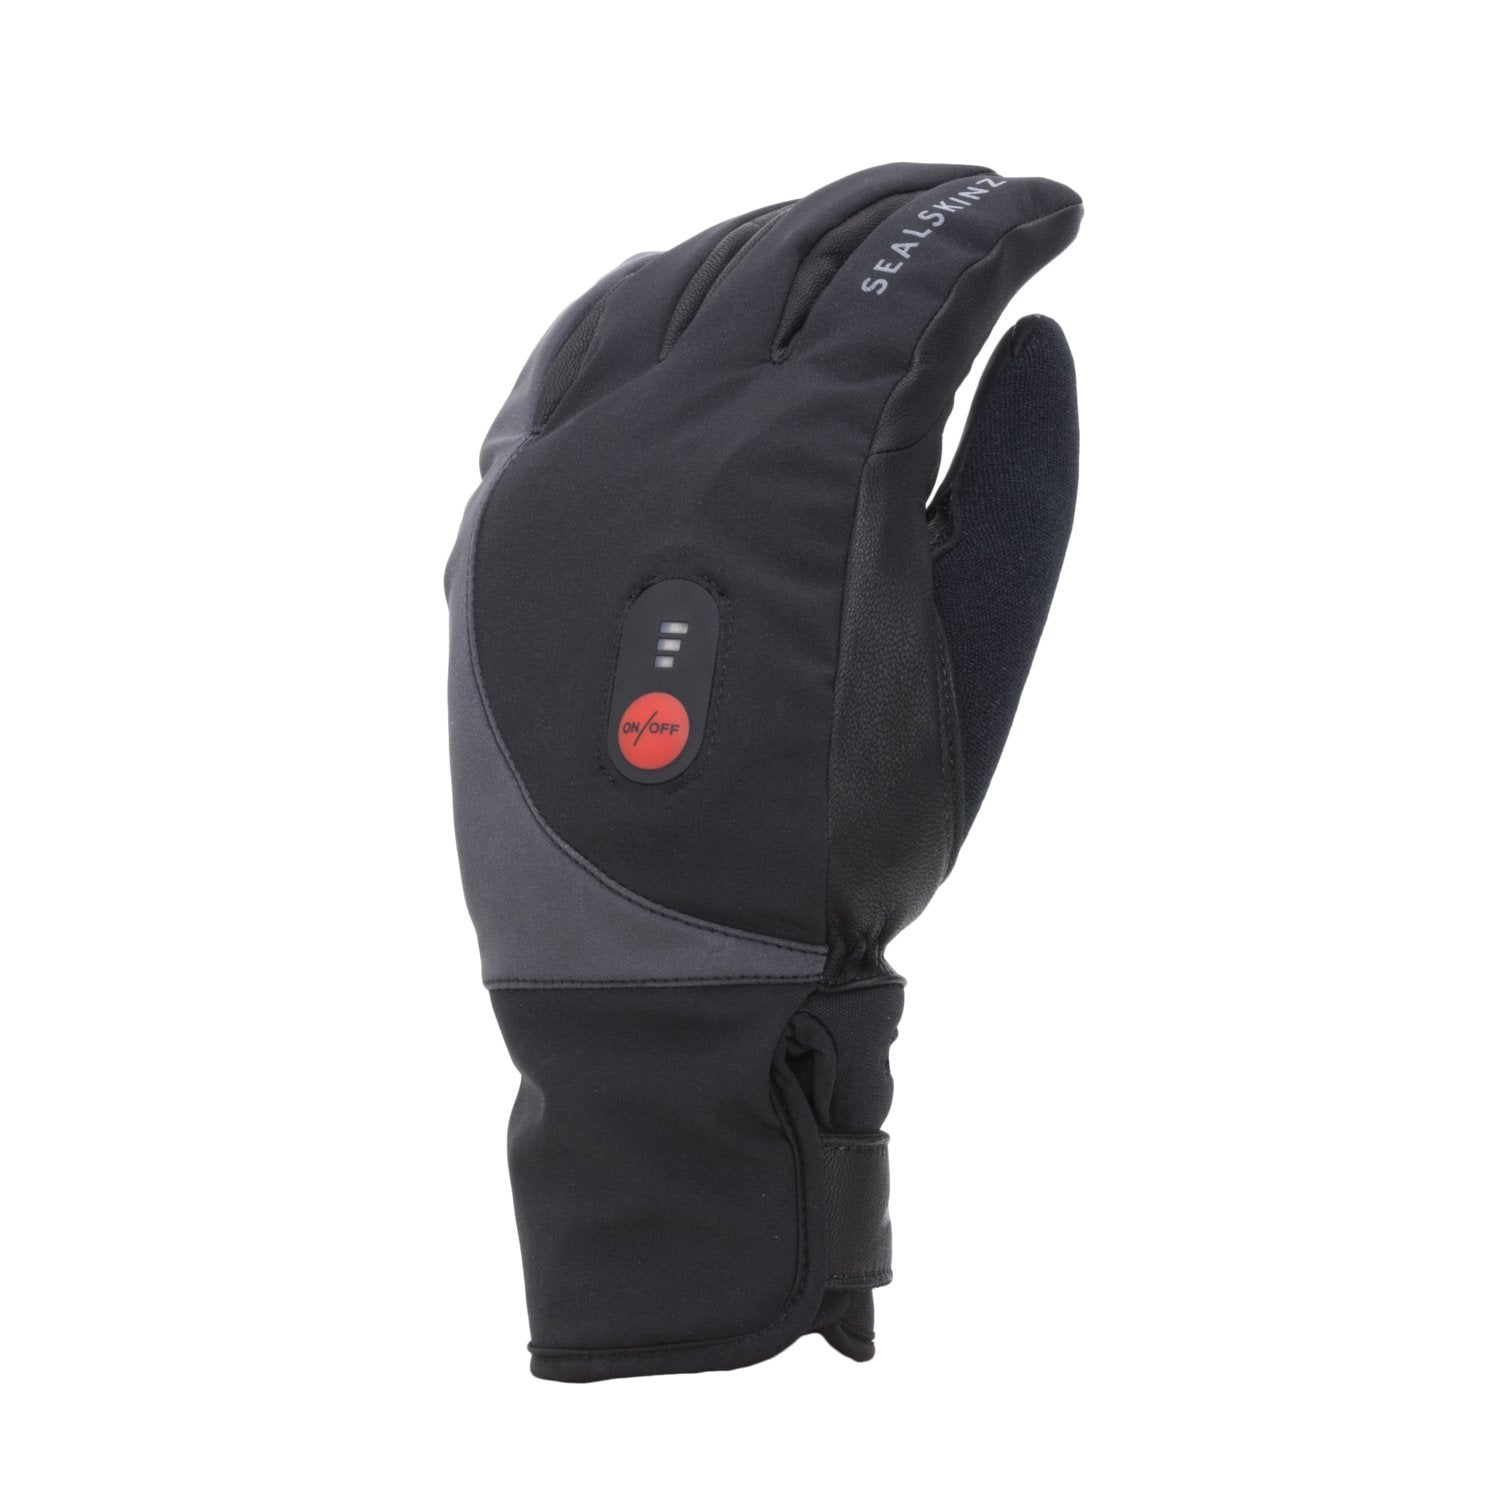 waterproof-heated-cycle-glove